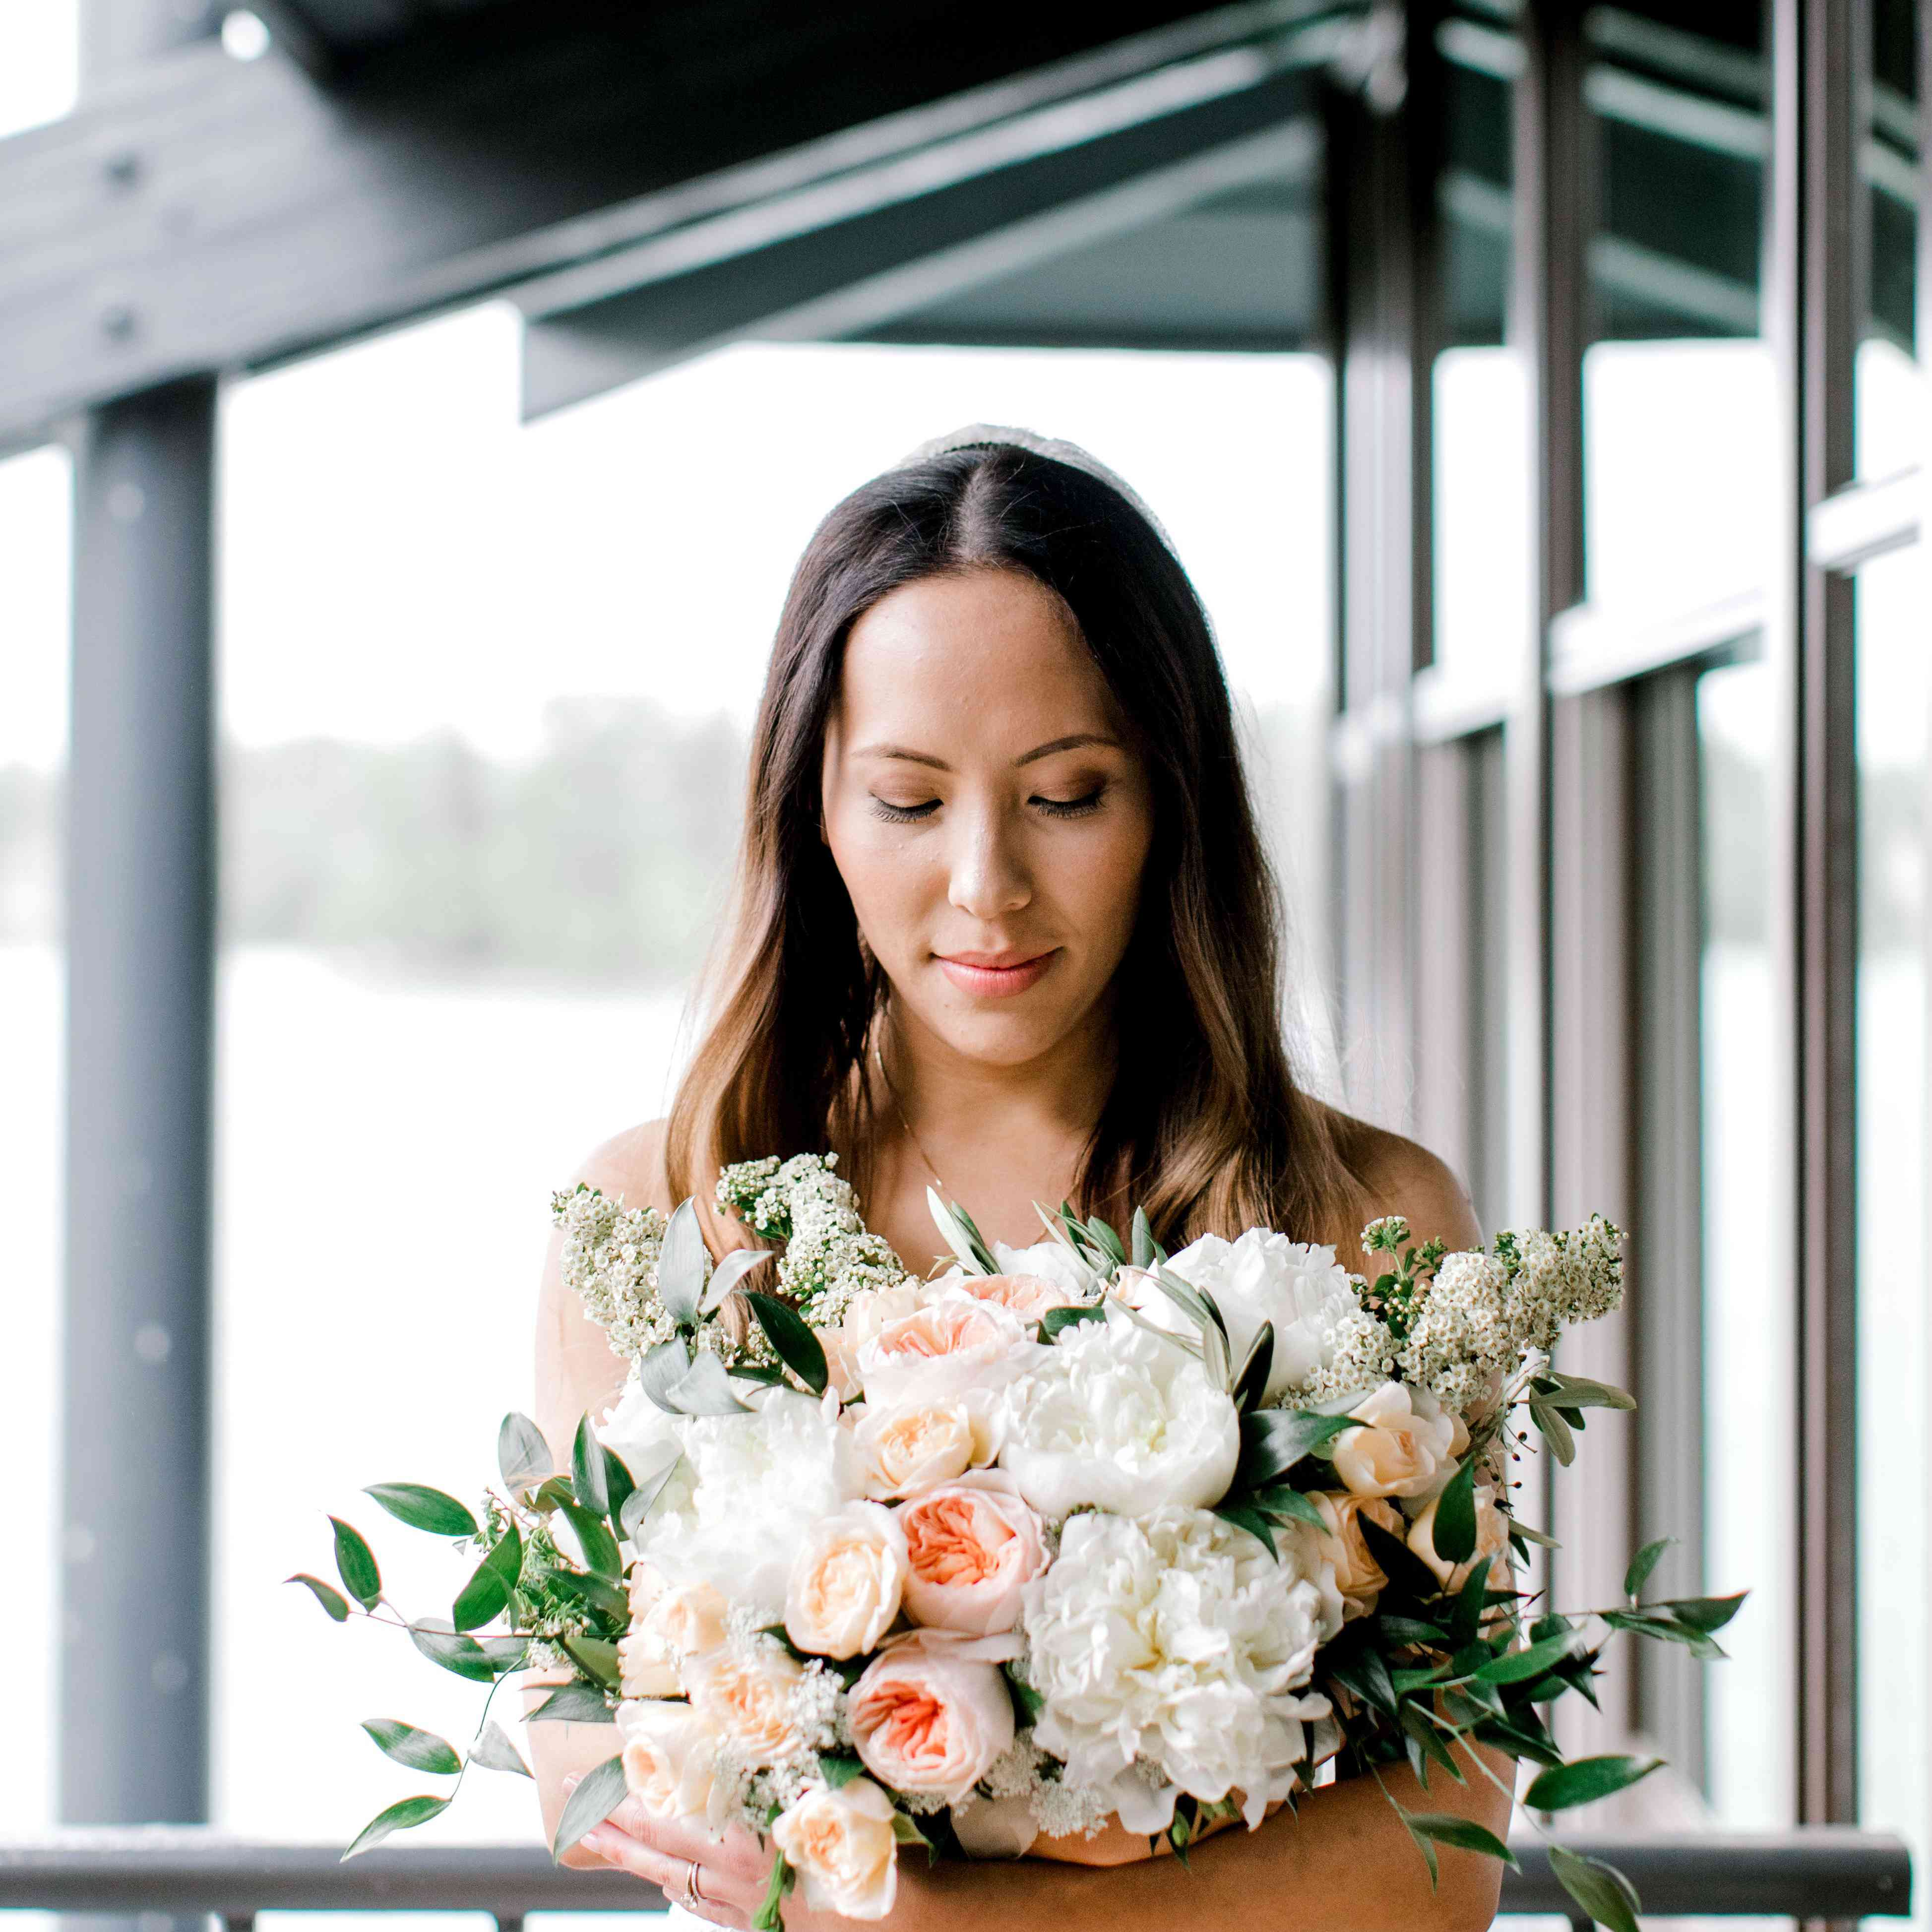 Bride holding a white and peach peony bouquet with baby's breath